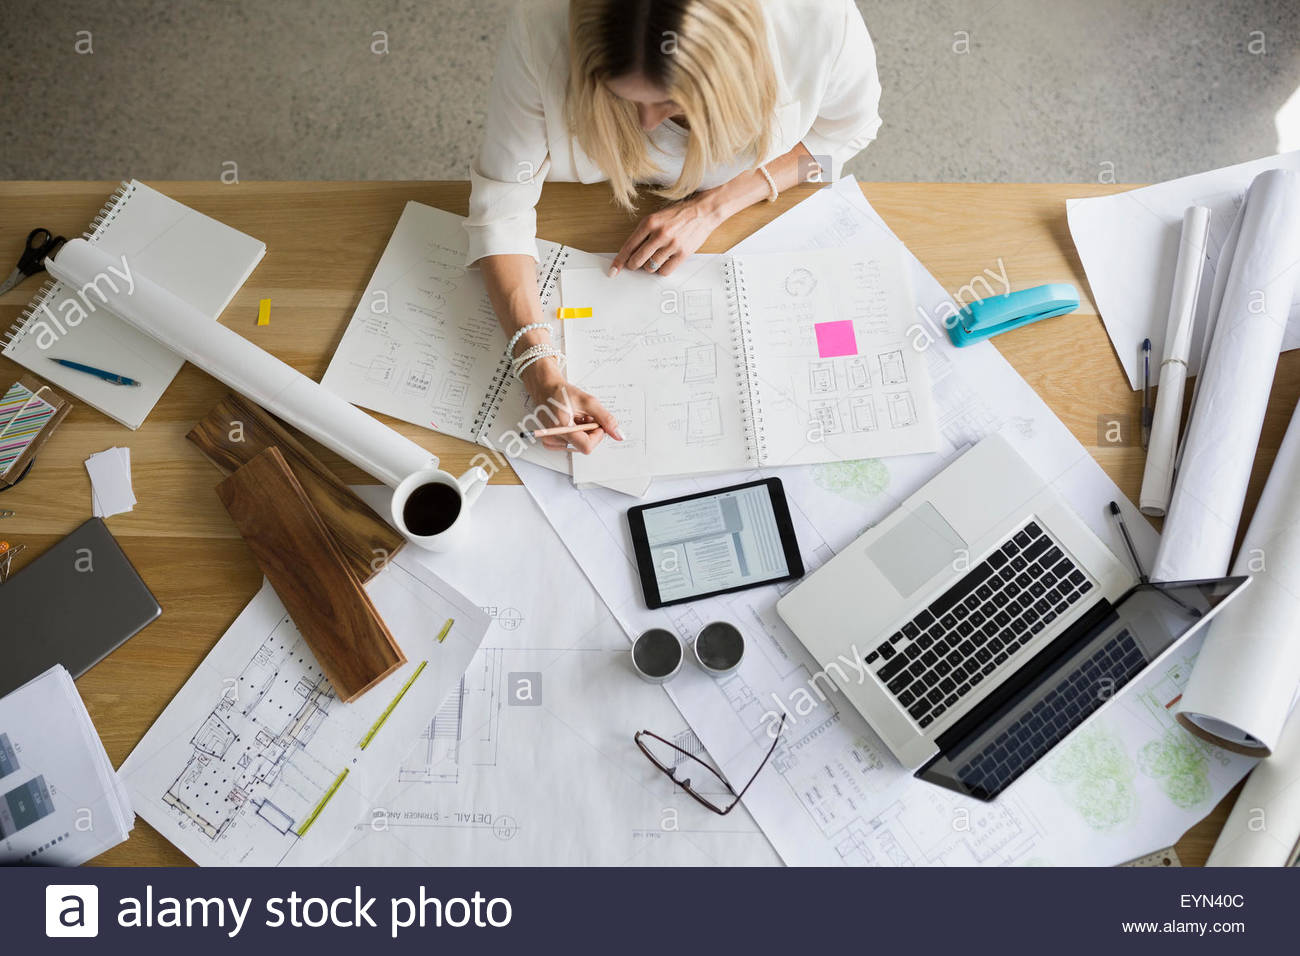 Overhead view architect drafting blueprints at table - Stock Image